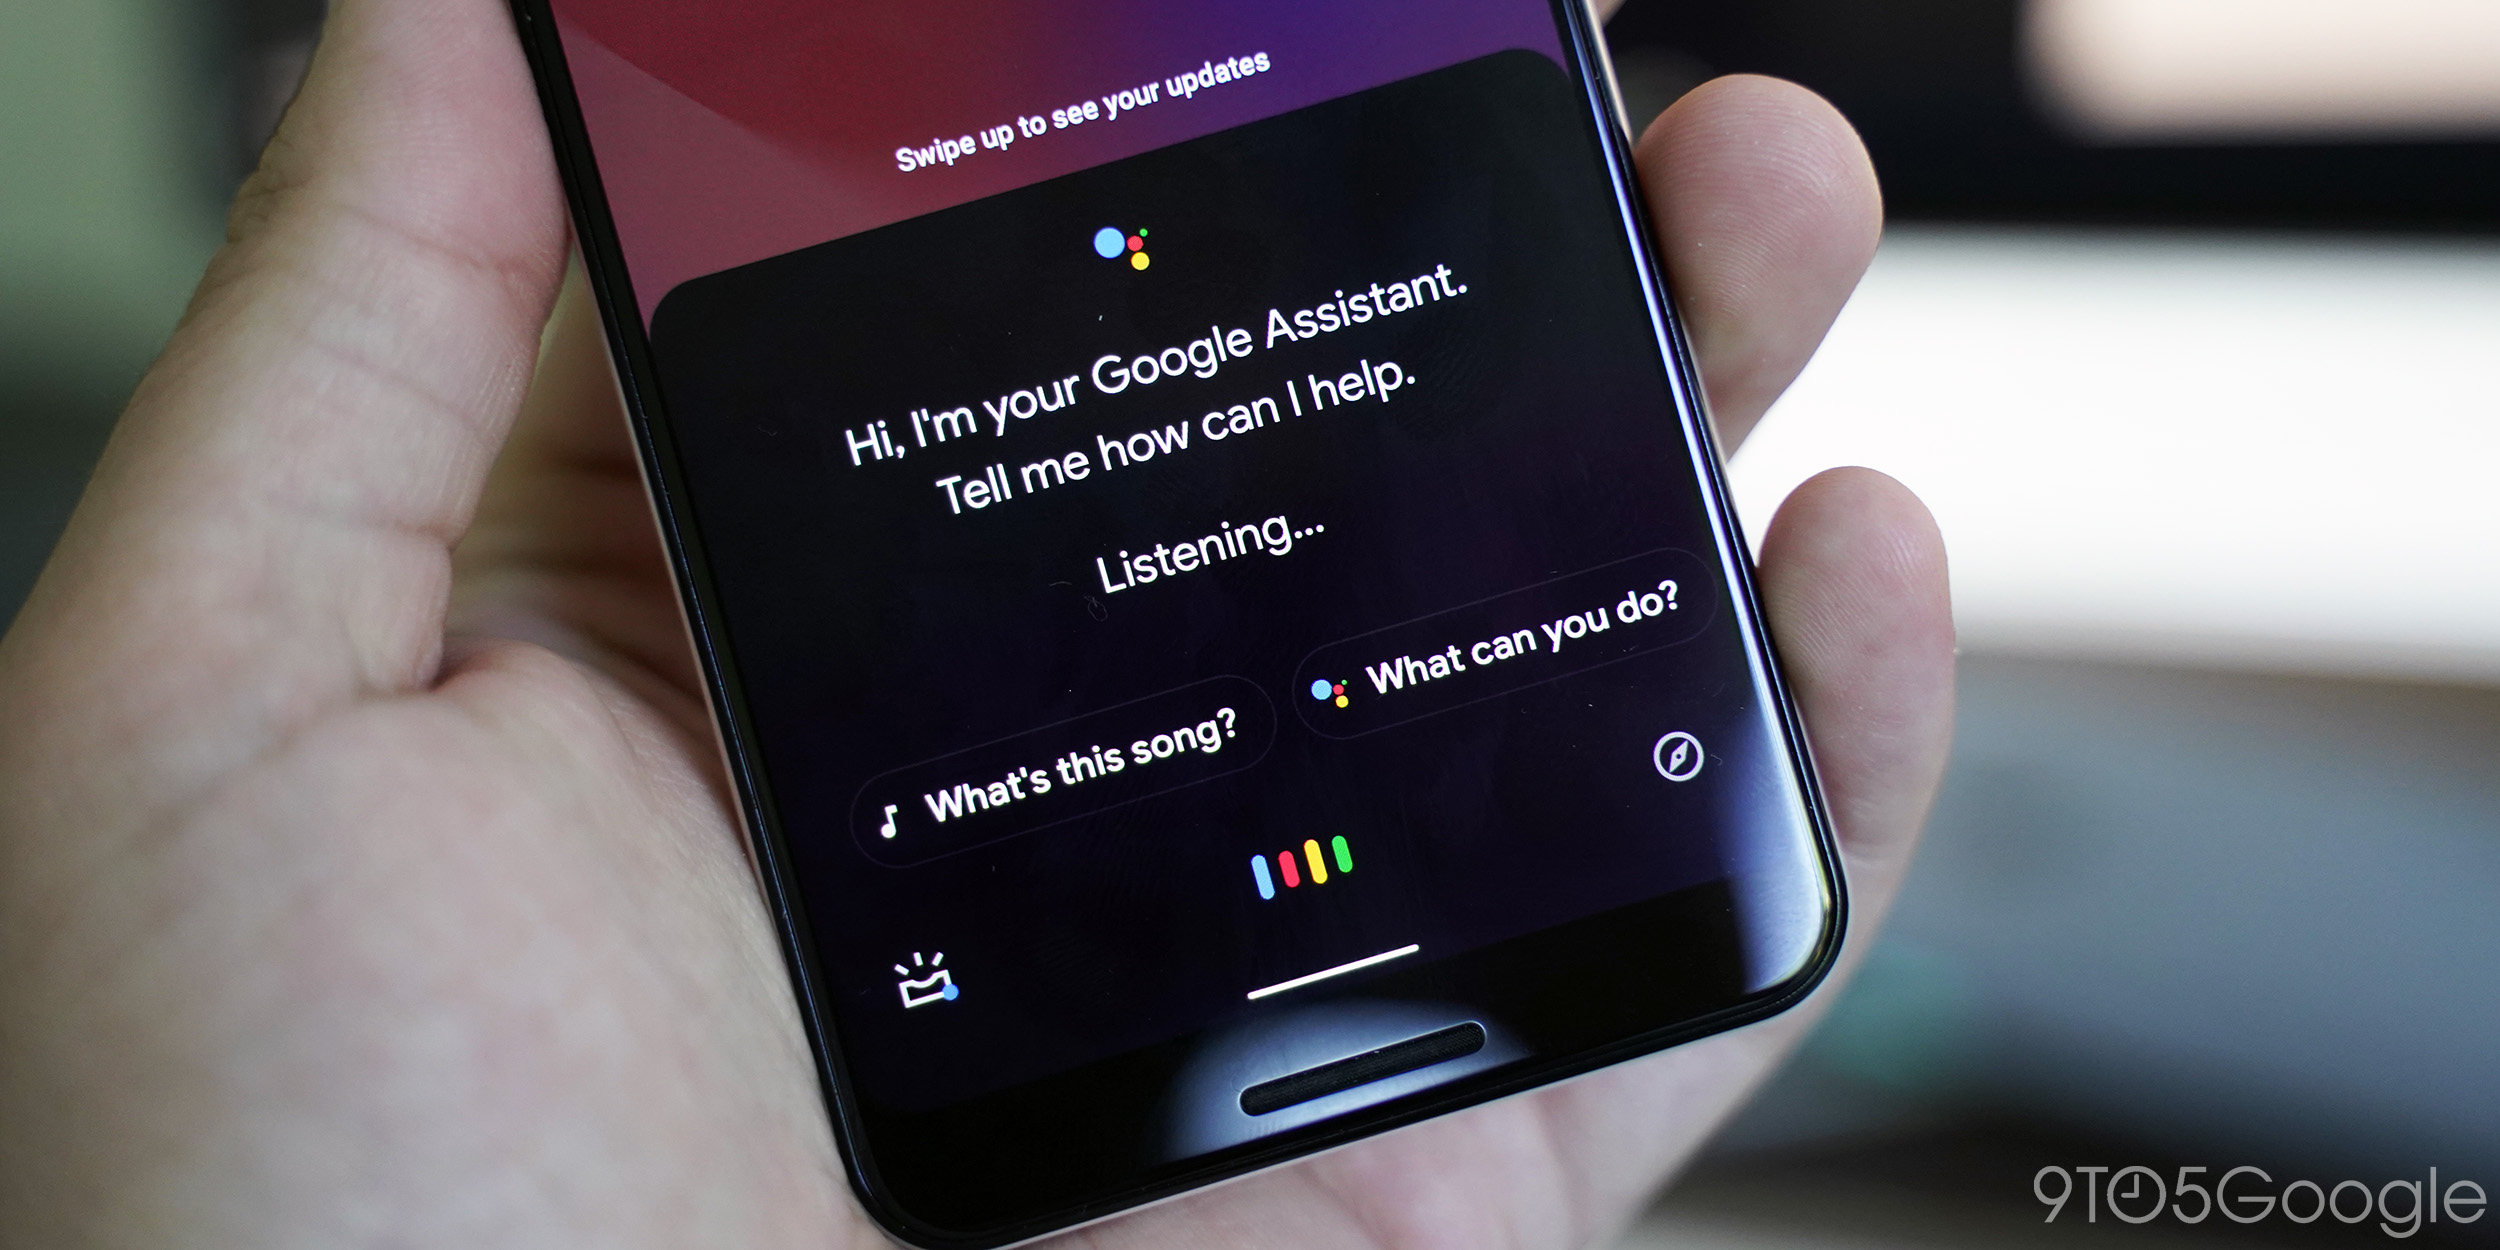 Android Q Beta 3: Here's how to force every app to use dark mode, including Google Assistant